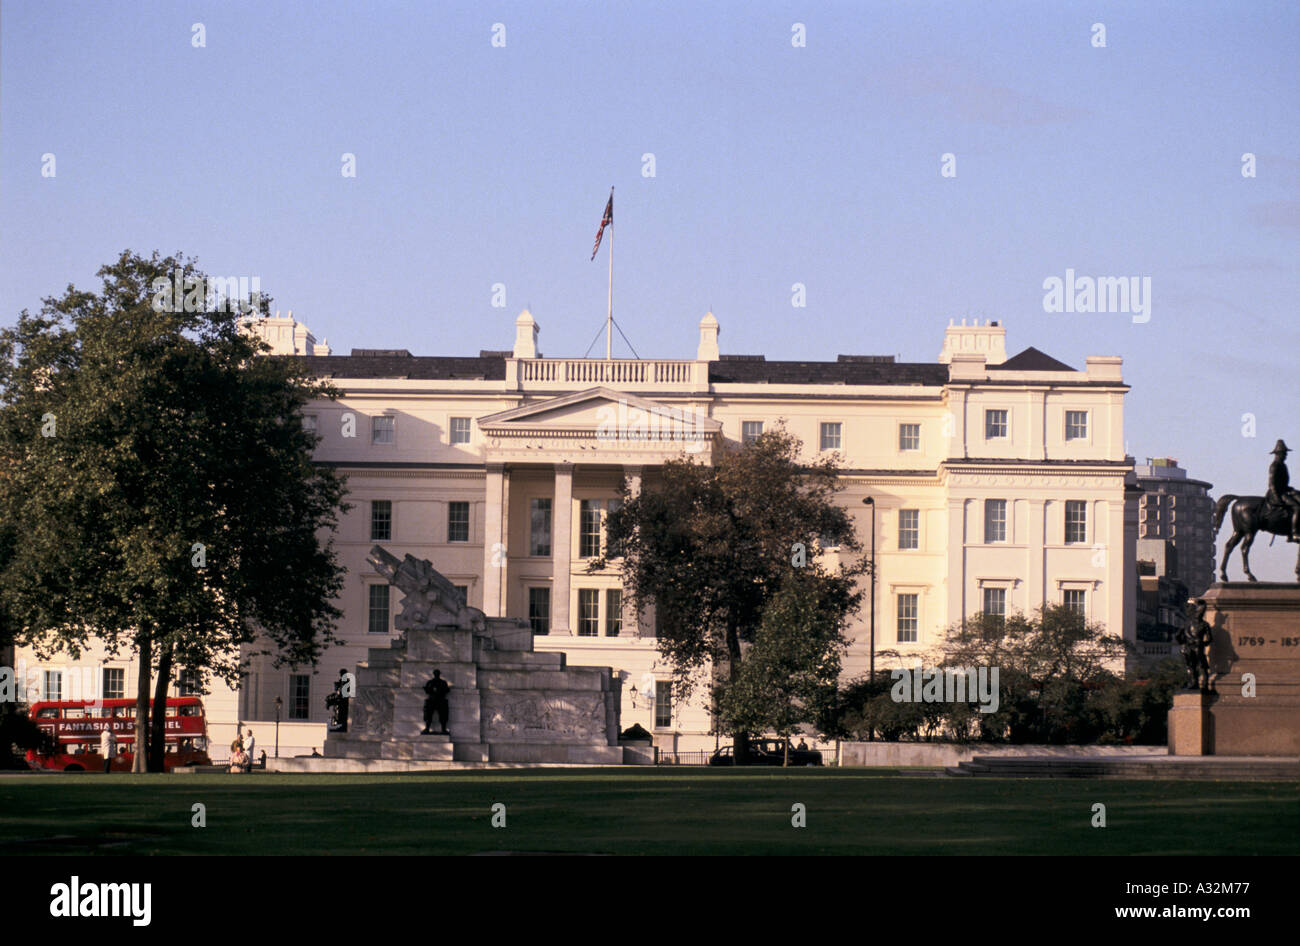 lanesborough hotel - Stock Image